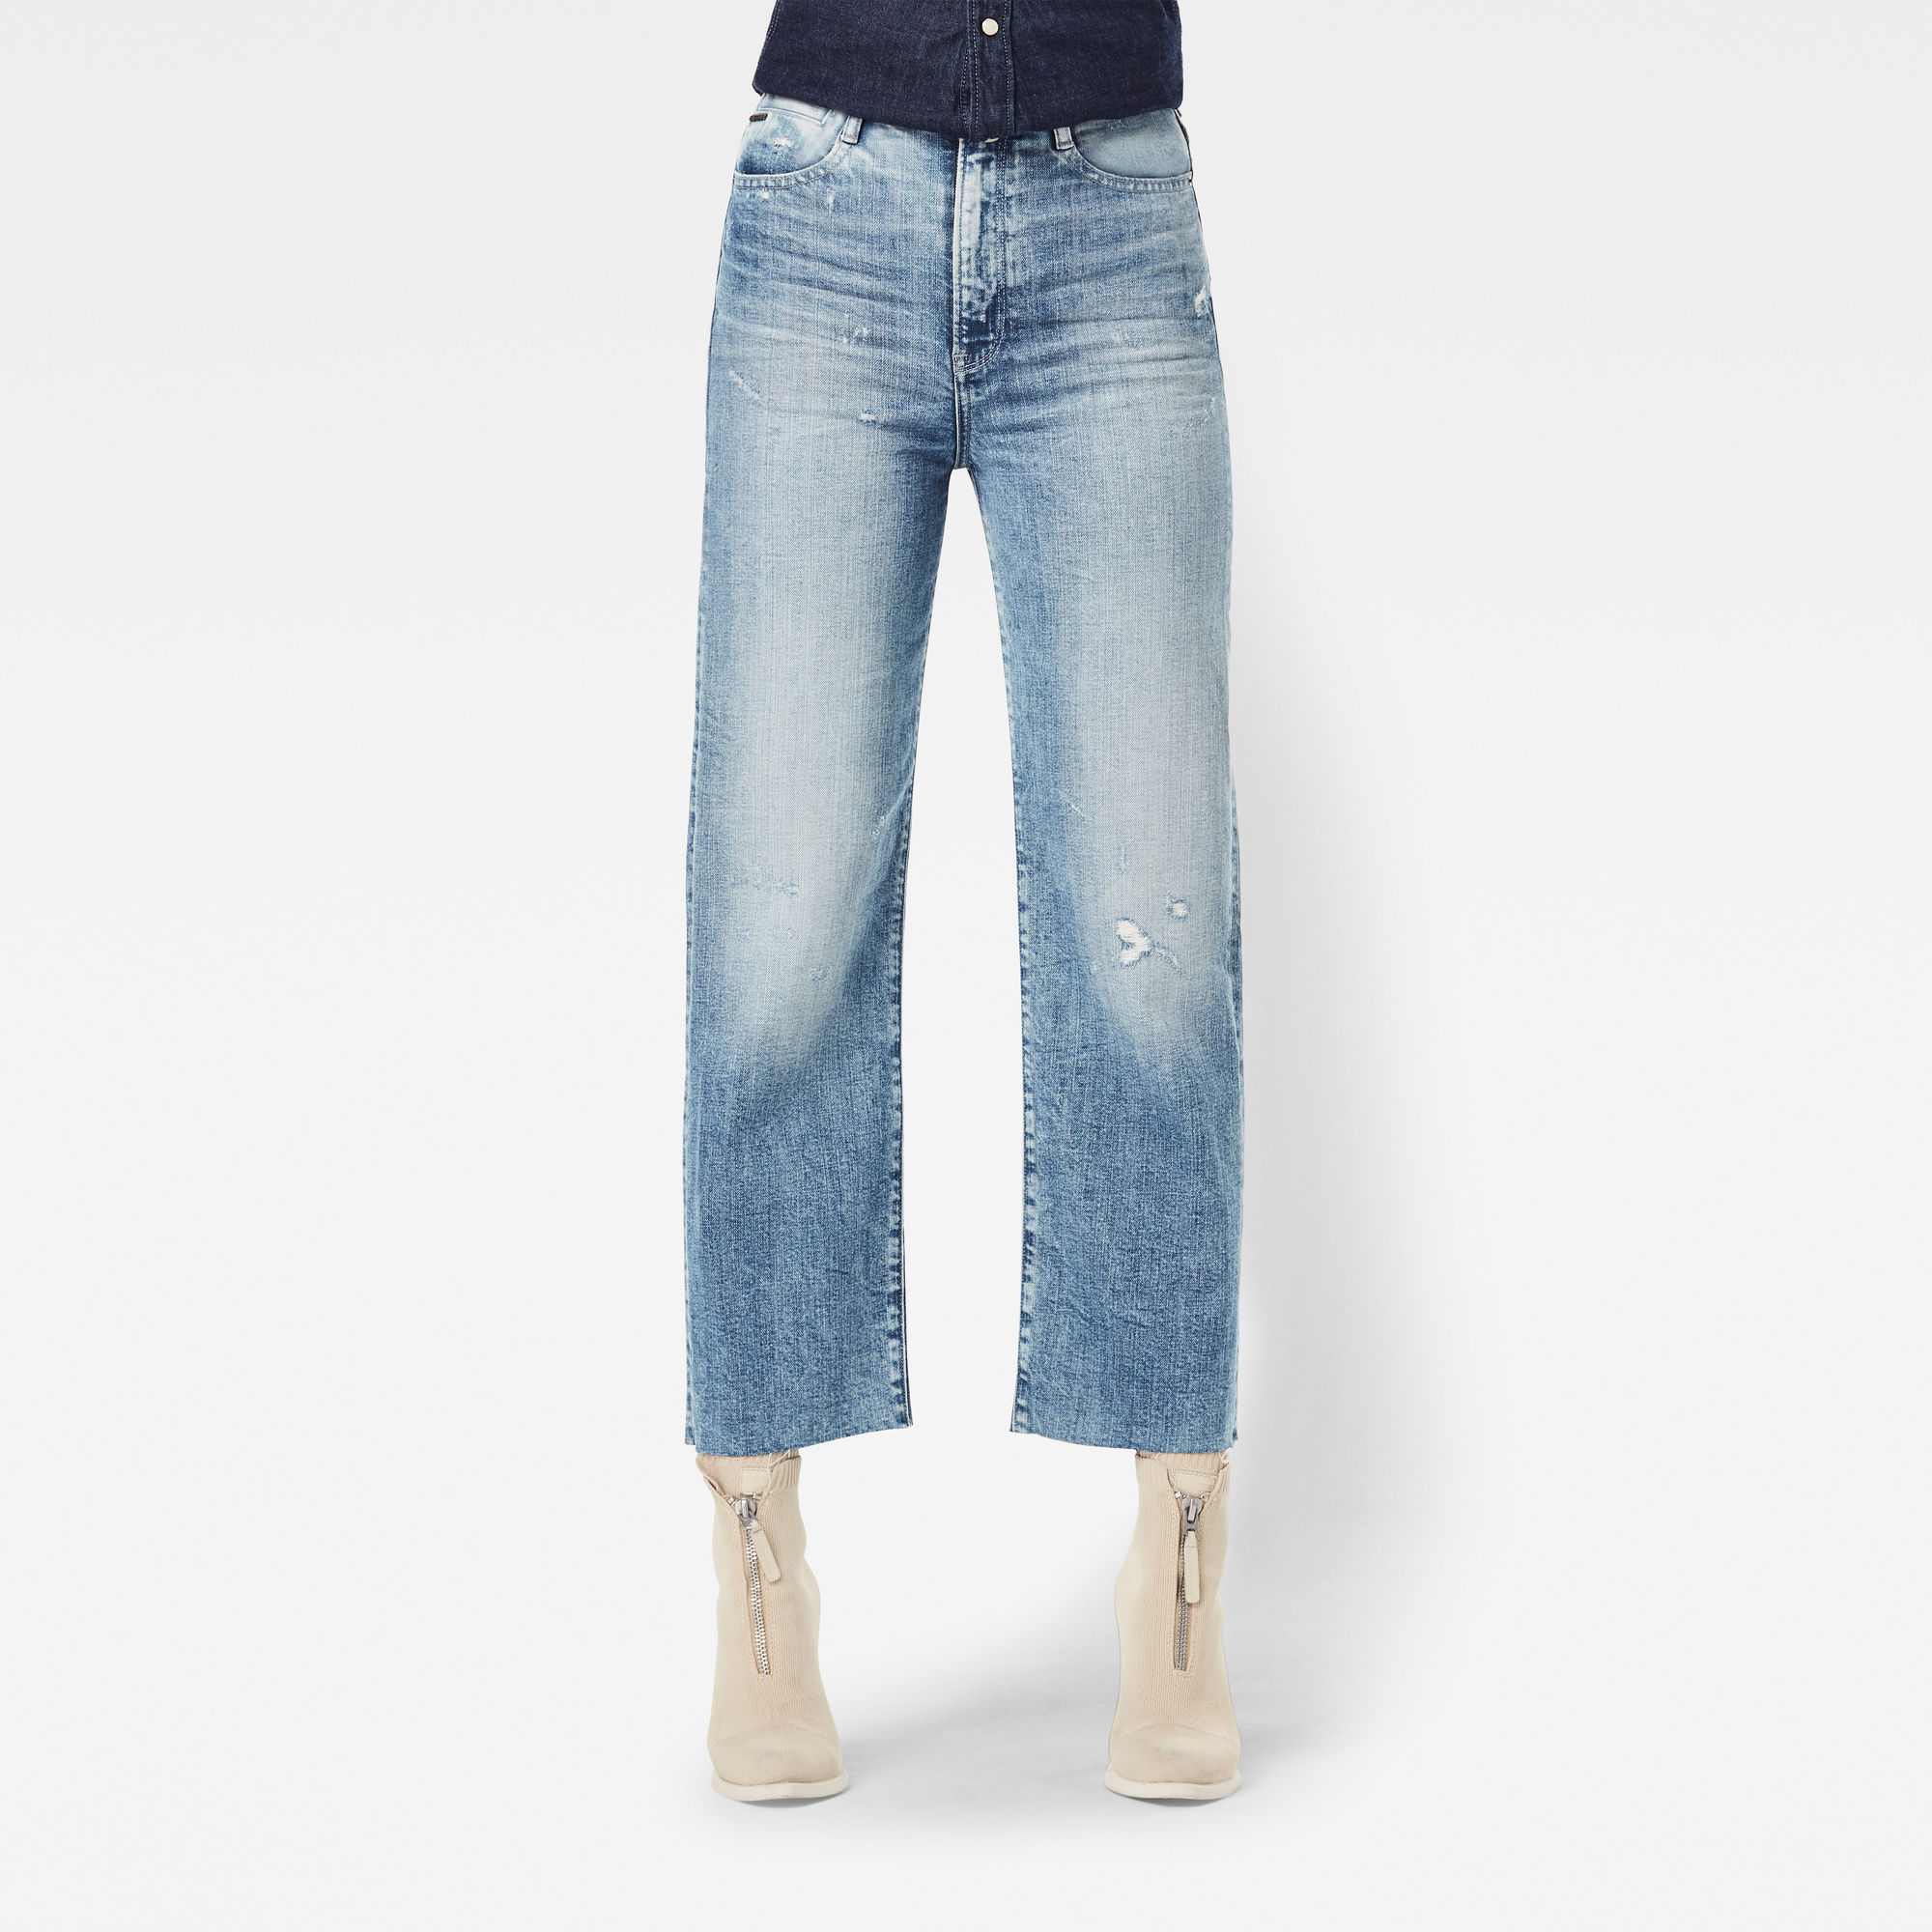 G-Star RAW Dames Tedie Ultra High Straight Ripped Edge Ankle Jeans Lichtblauw